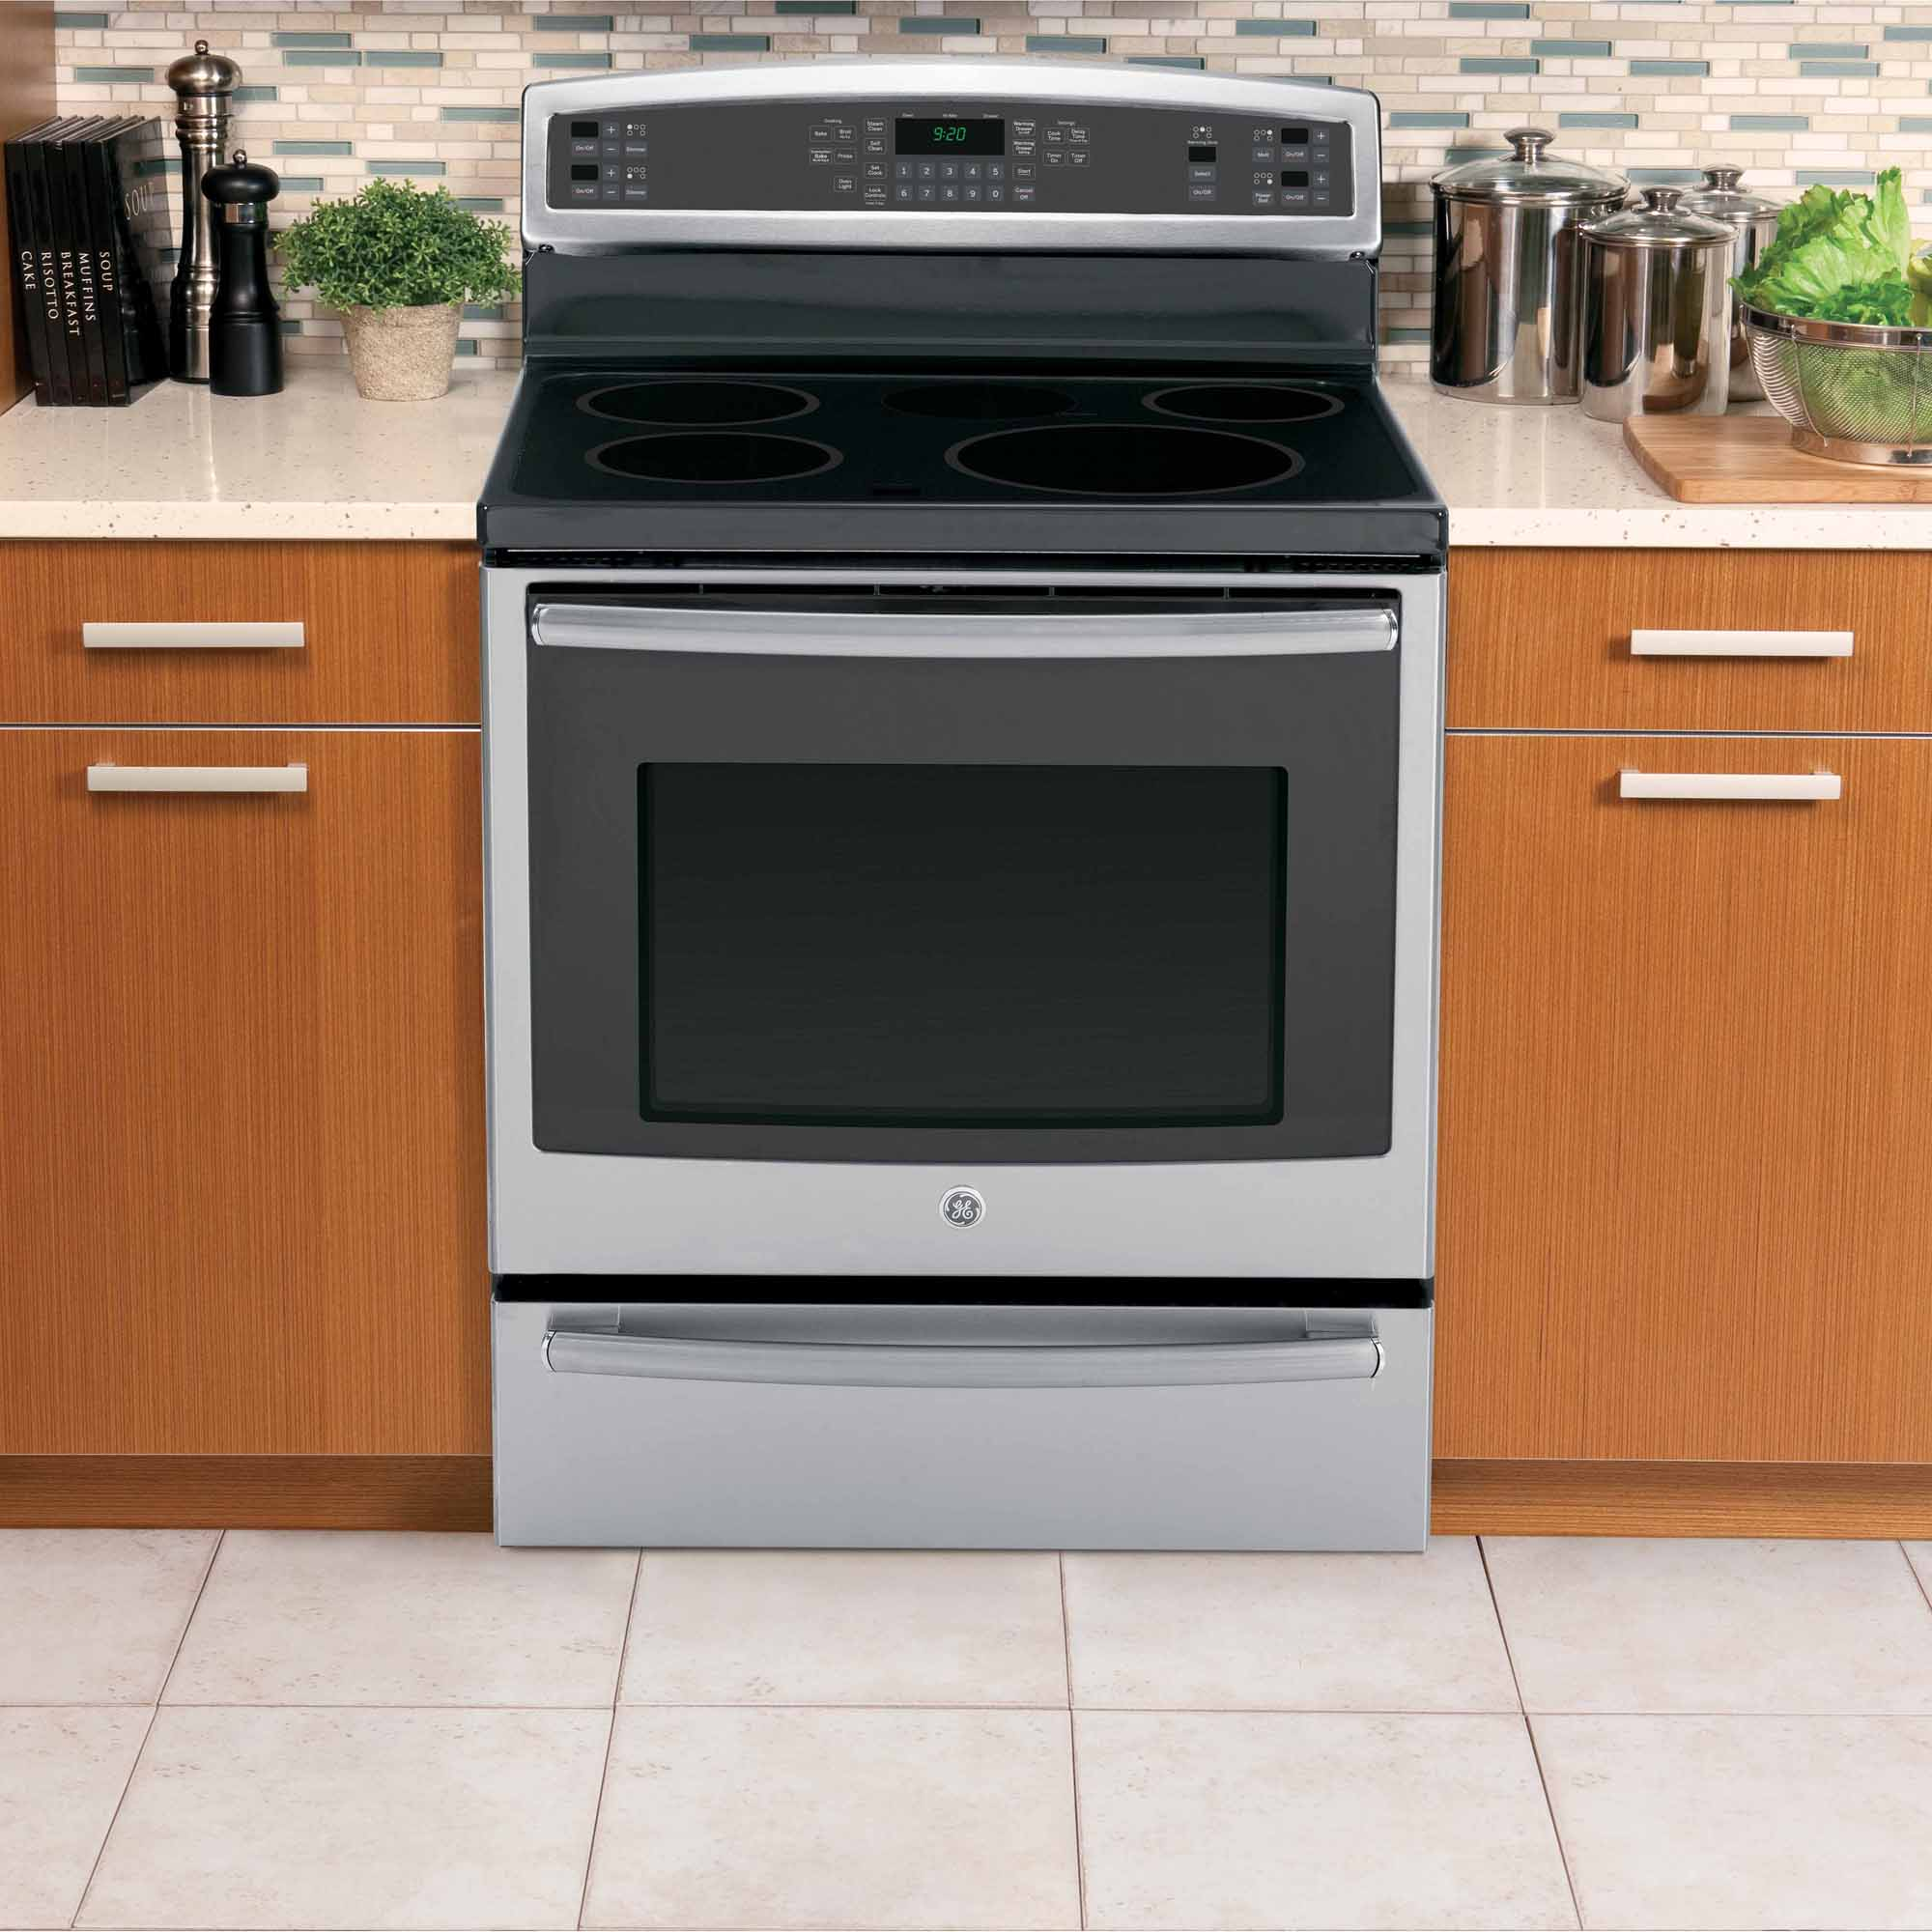 GE Profile 5.3 cu. ft. Induction Range w/ Convection - Stainless